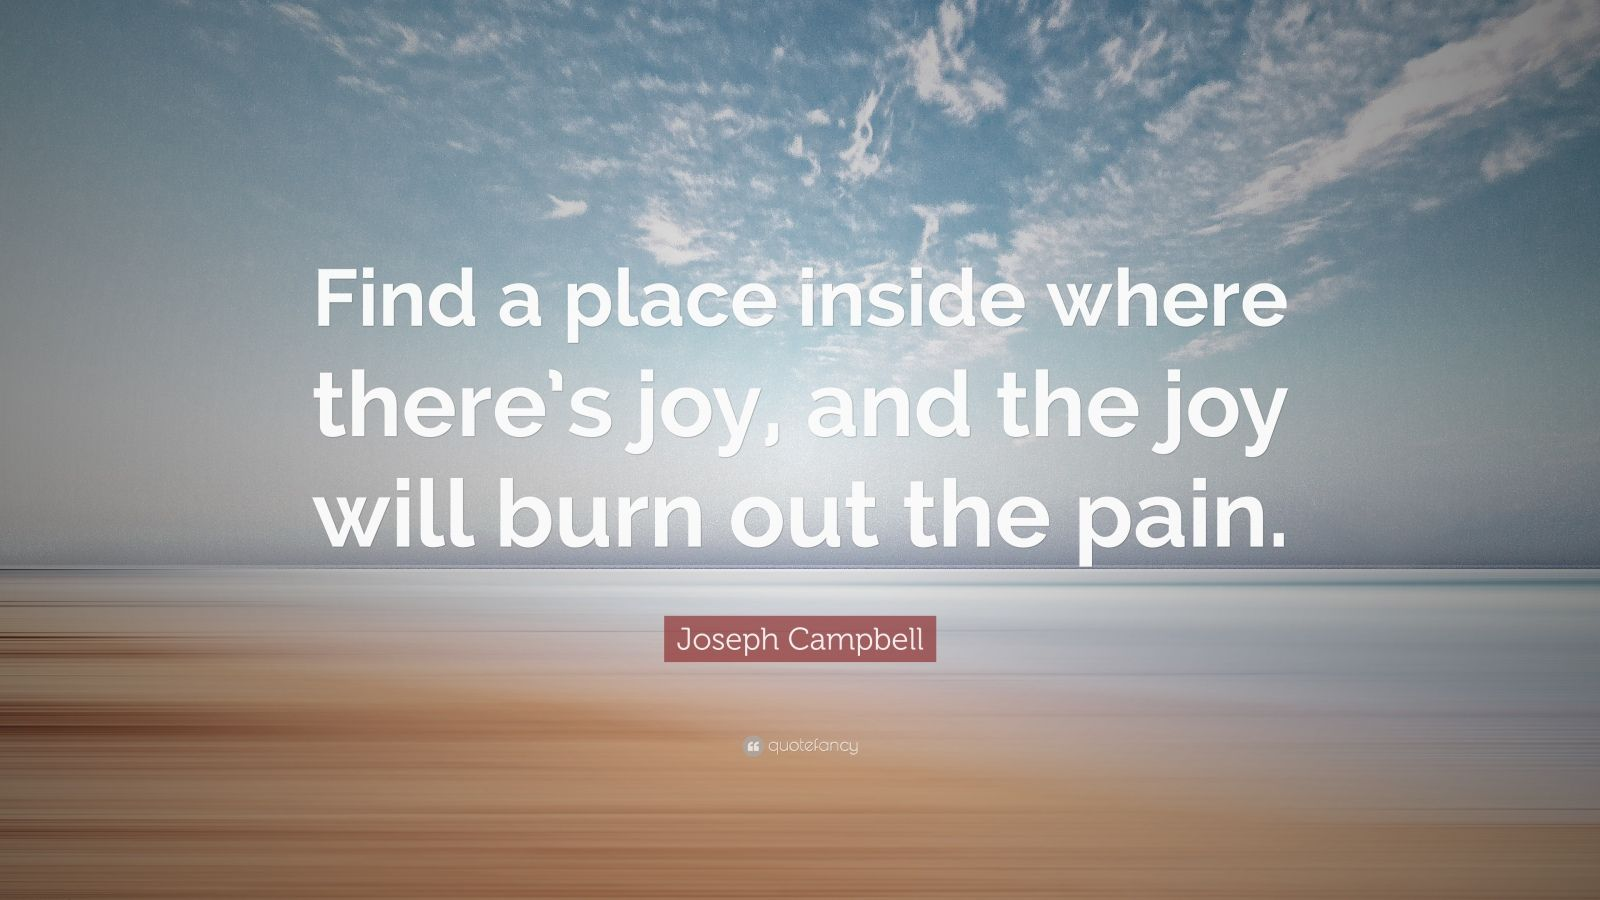 Socrates Wallpaper Quotes Joseph Campbell Quote Find A Place Inside Where There S